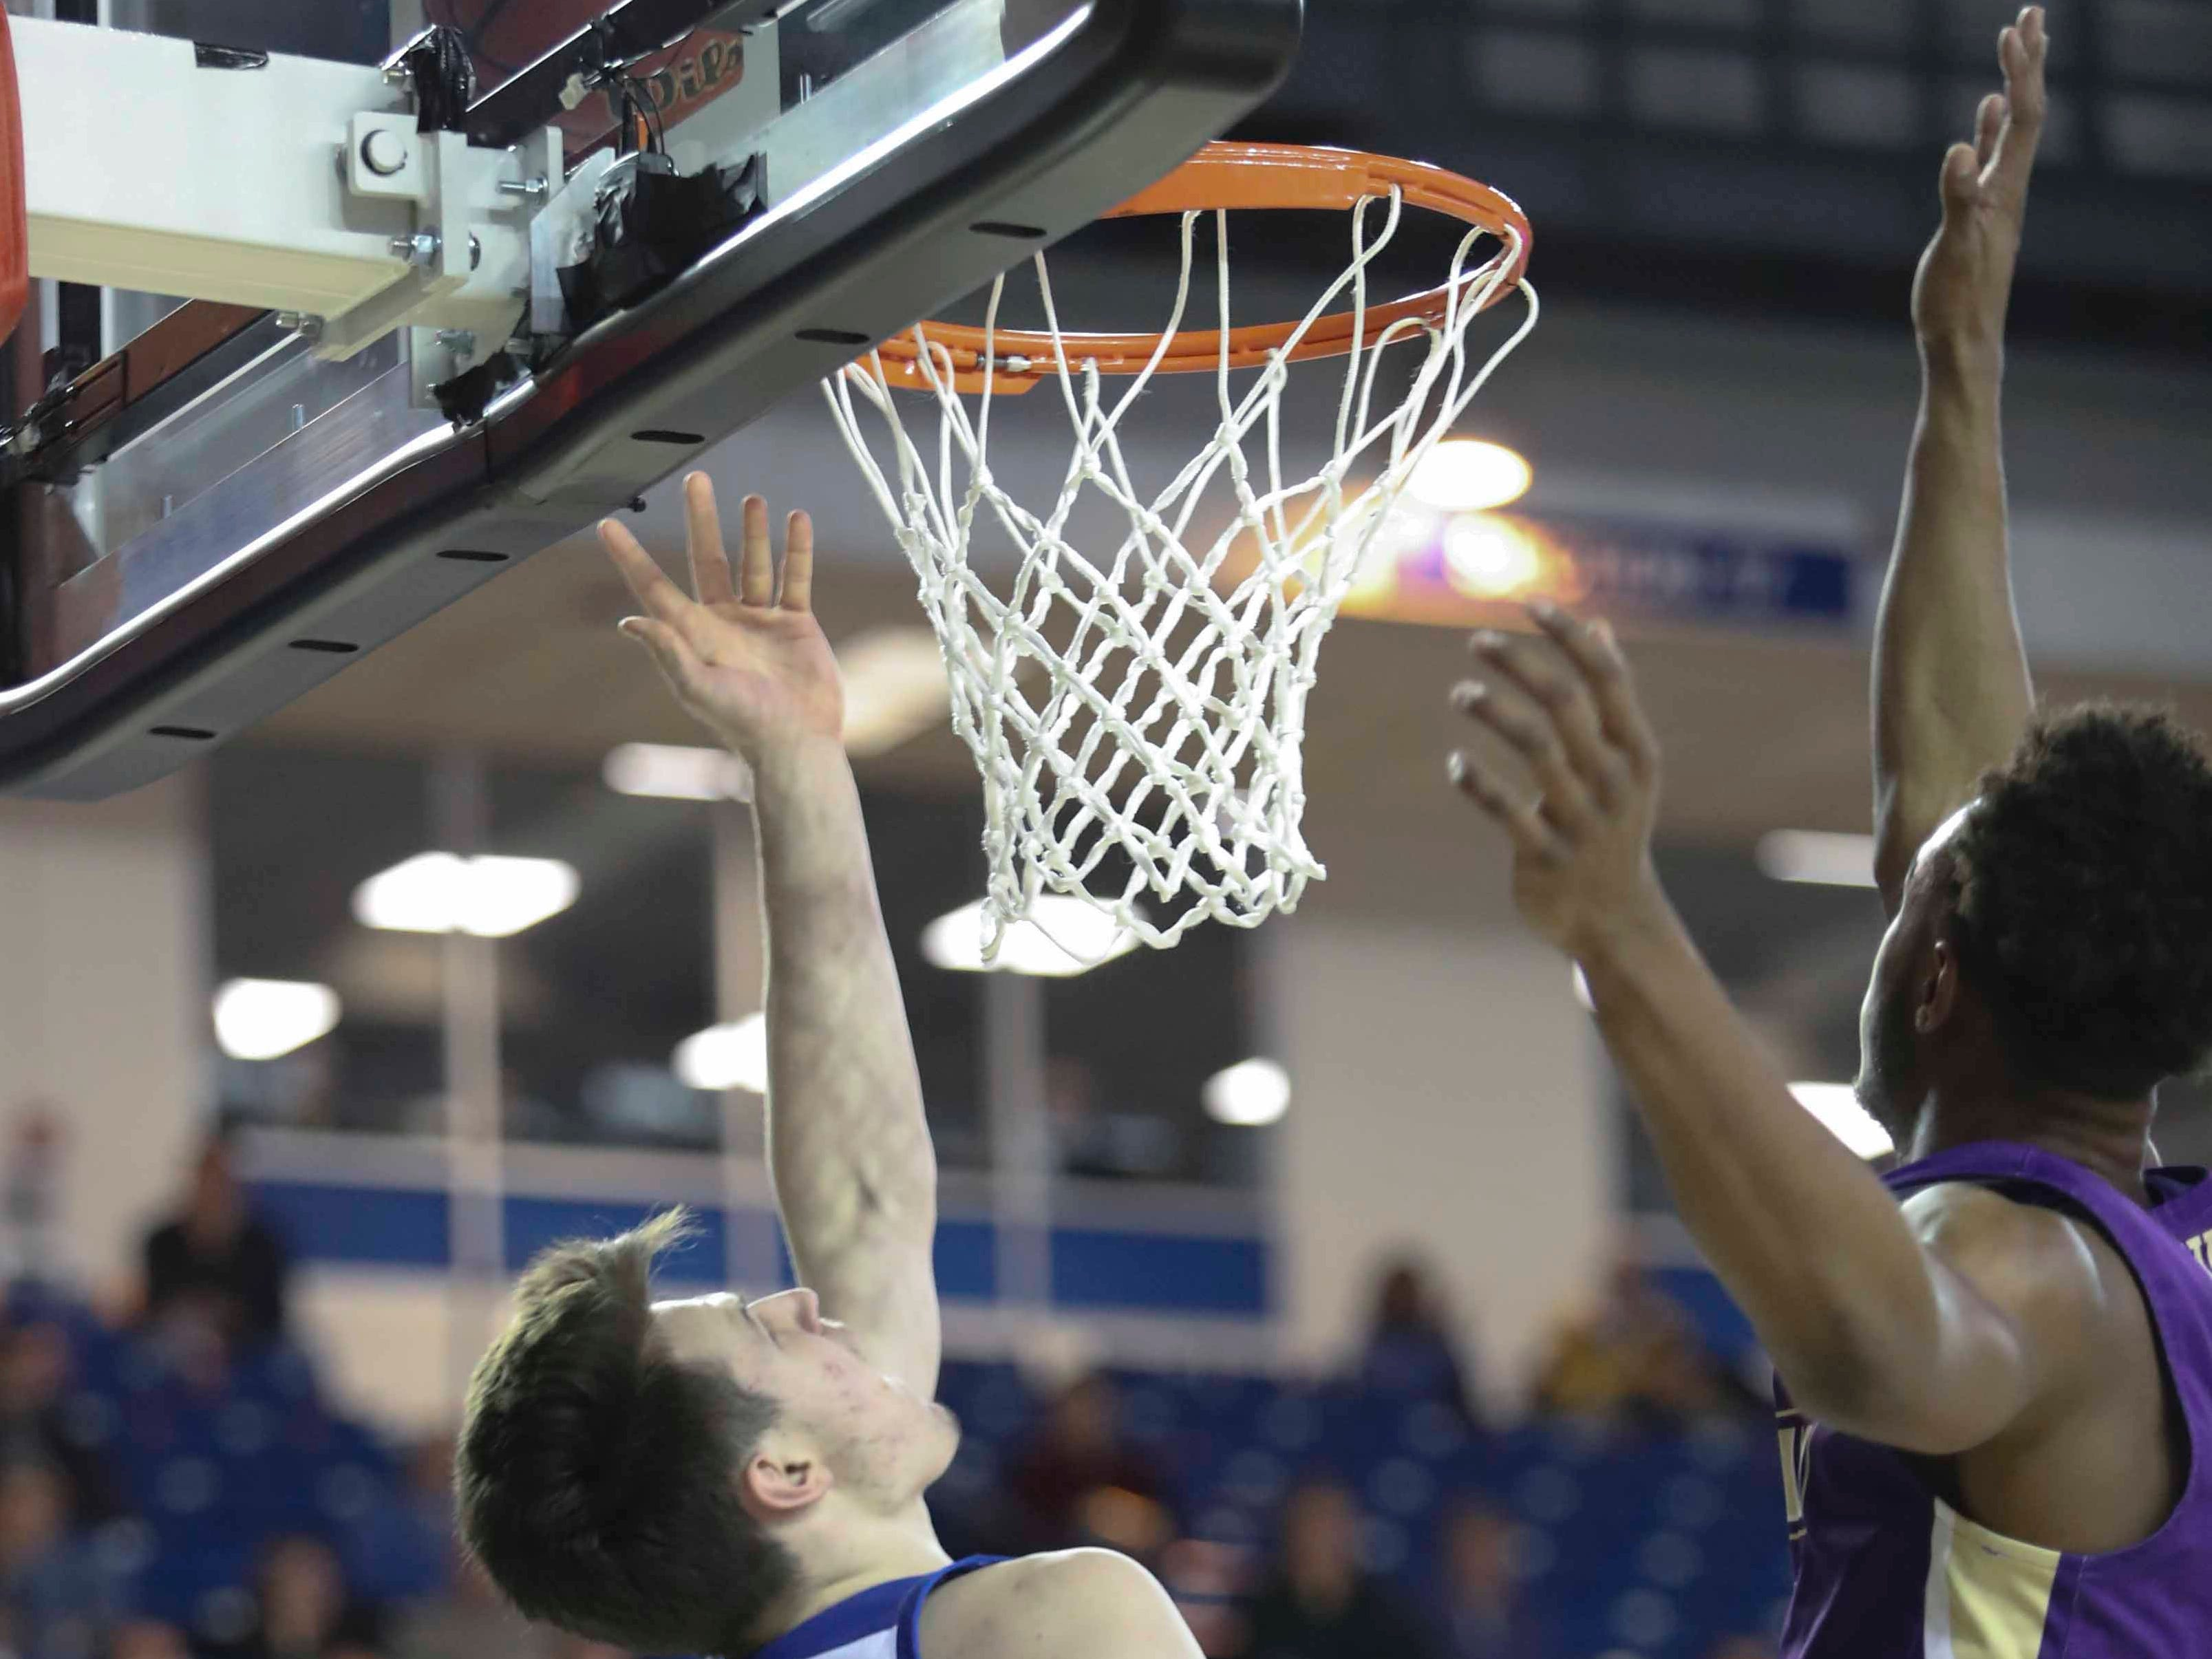 Delaware's Matt Veretto puts up a shot underneath the hoop in the second half of the Blue Hens' 76-69 win at the Bob Carpenter Center Thursday.